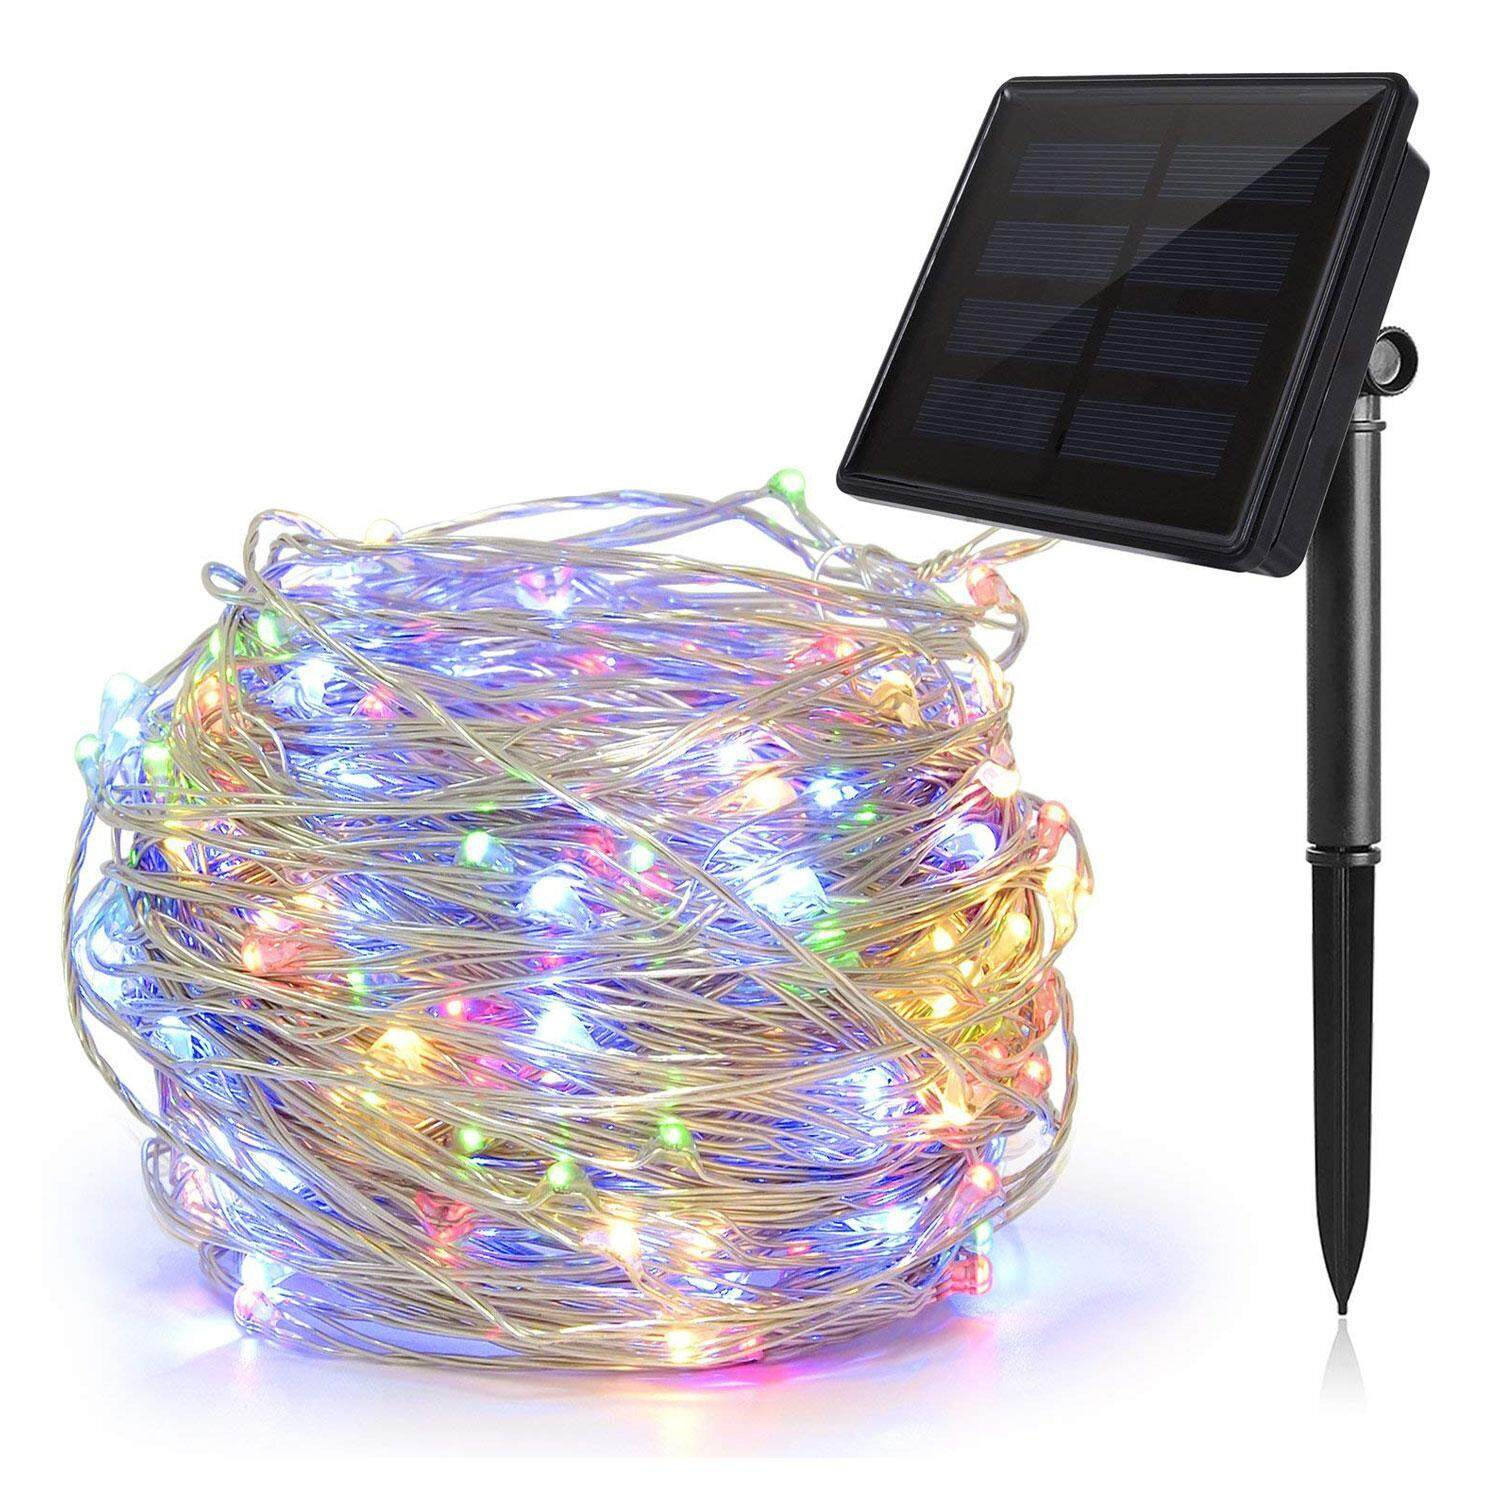 Aolvo Solar outdoor garden fence Christmas tree lights wedding decoration color string lights,10 meters